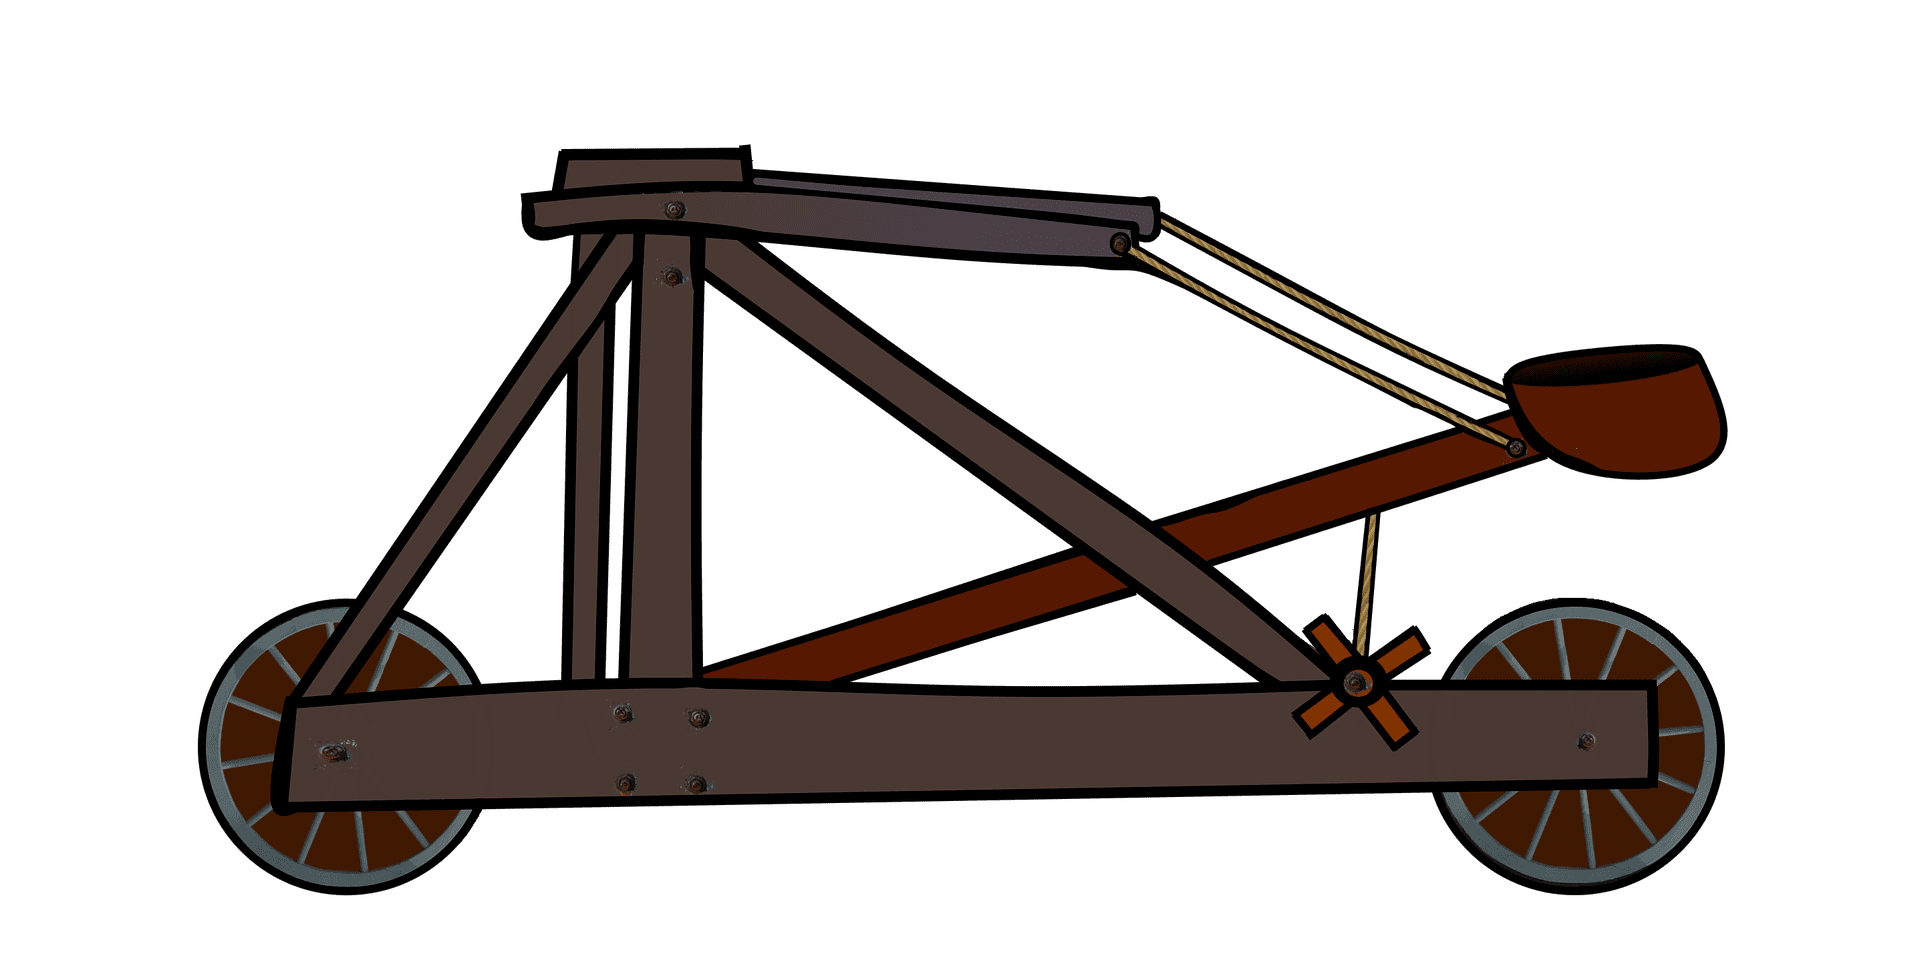 an illustration of a classic catapult